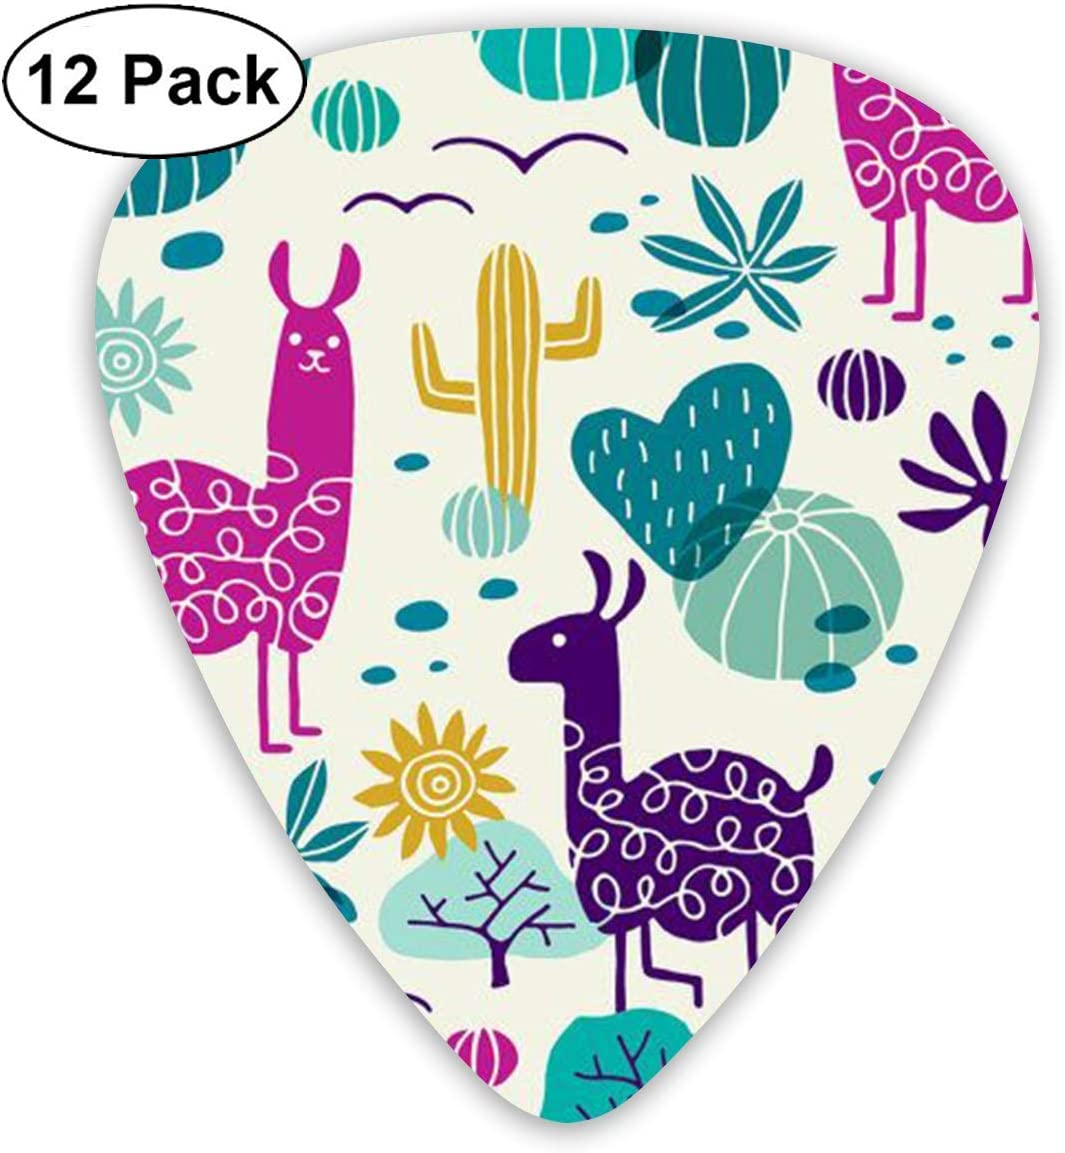 12 Pack Guitar Picks Funny Park.png Think, Medium and Heavy,Unique Guitar Gift for Bass, Electric & Acoustic Guitars: Amazon.es: Instrumentos musicales